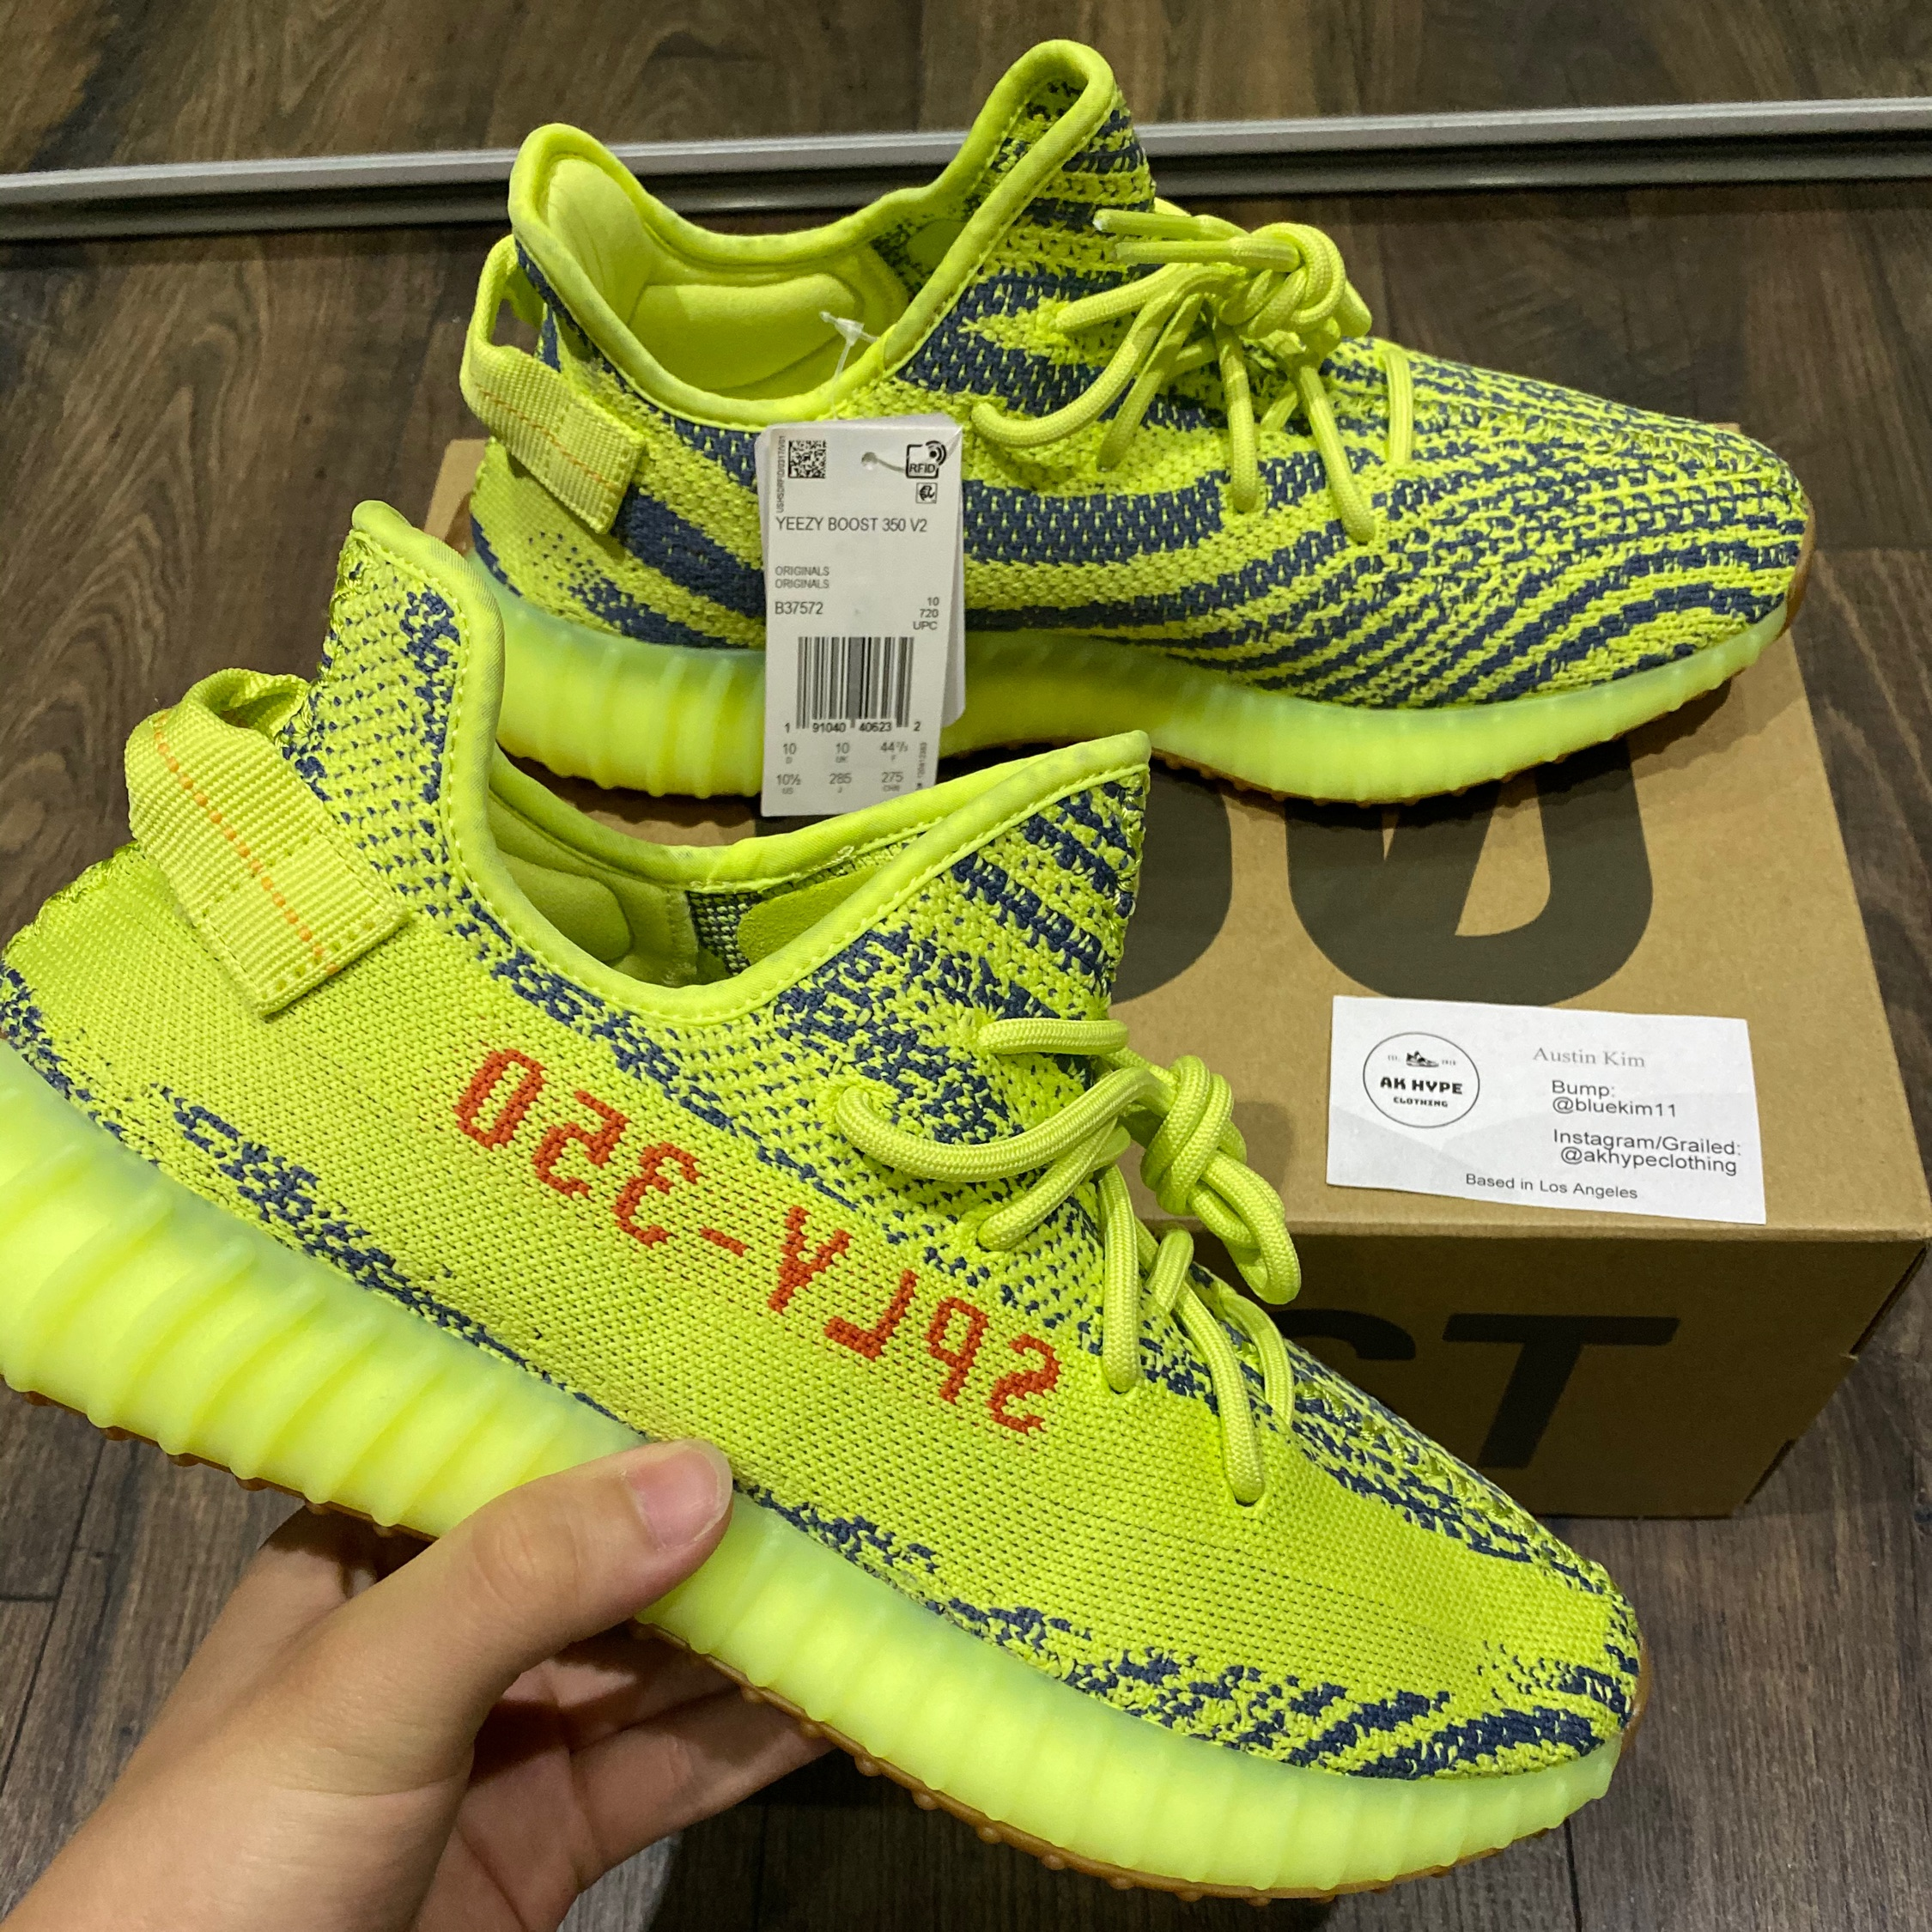 yeezy 350 frozen yellow outfit